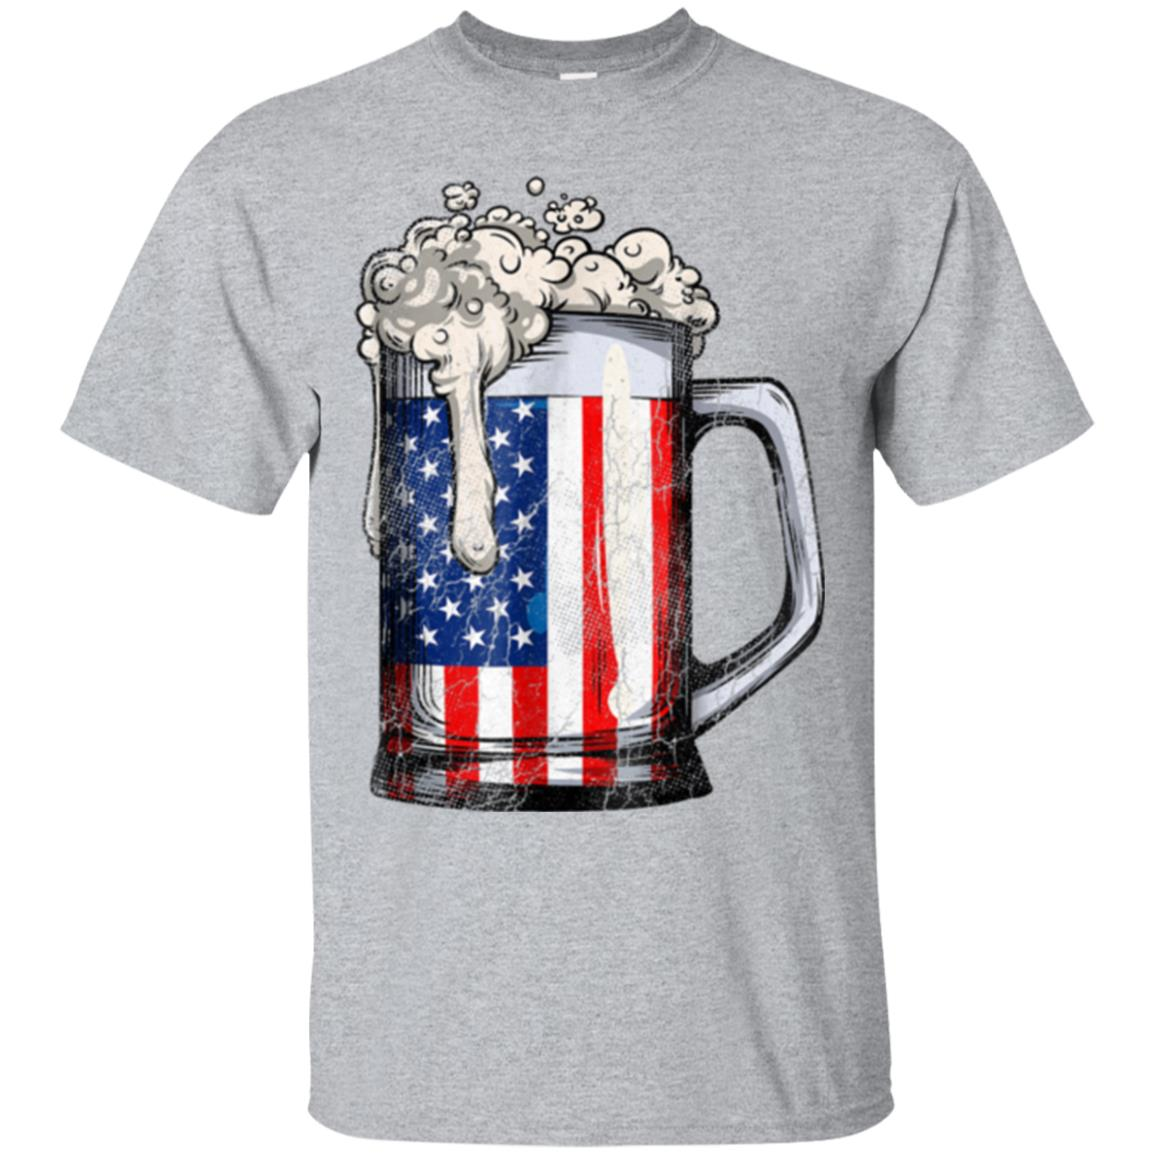 Beer American Flag T shirt 4th of July Men Women Merica USA 99promocode